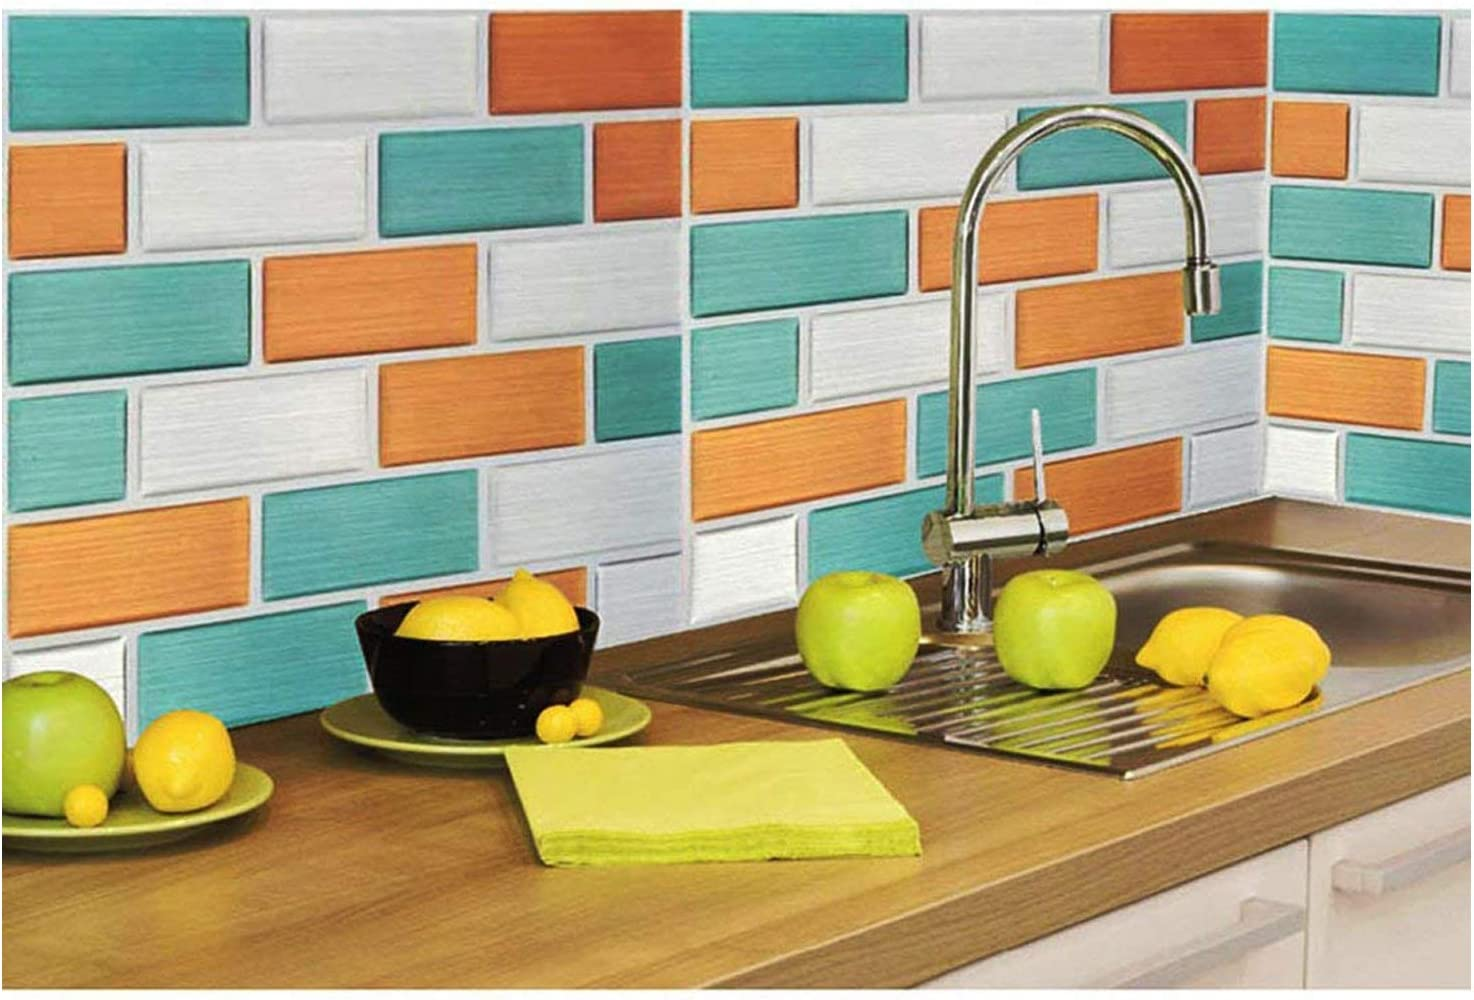 - Amazon.com: Backsplash Peel And Stick Tile Stickers Decals